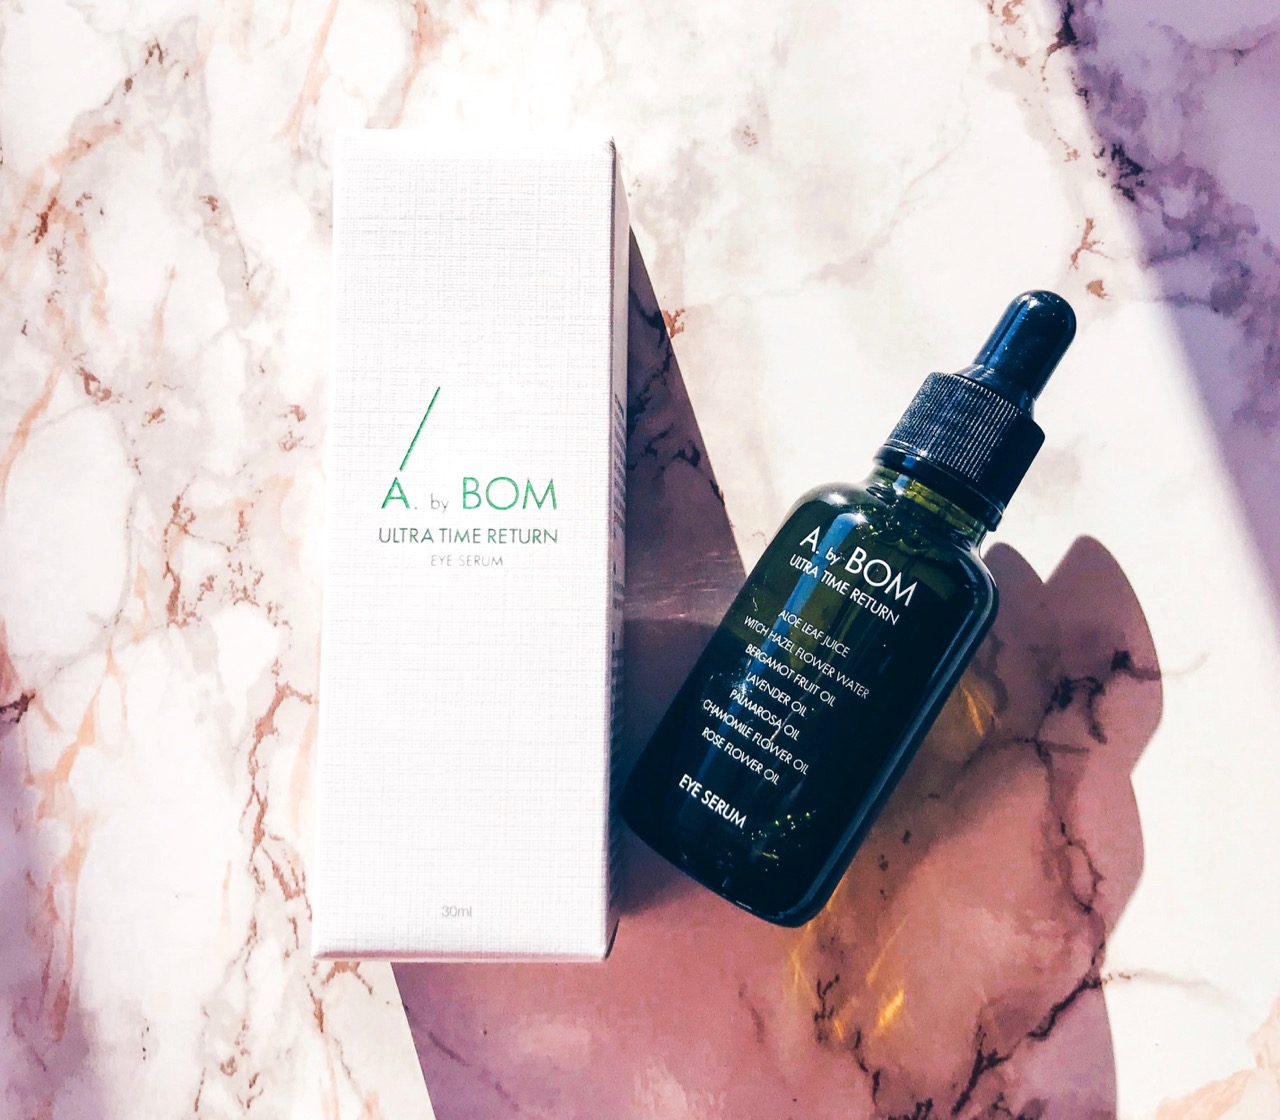 A. By BOM Ultra Time Return Eye Serum K-beauty review